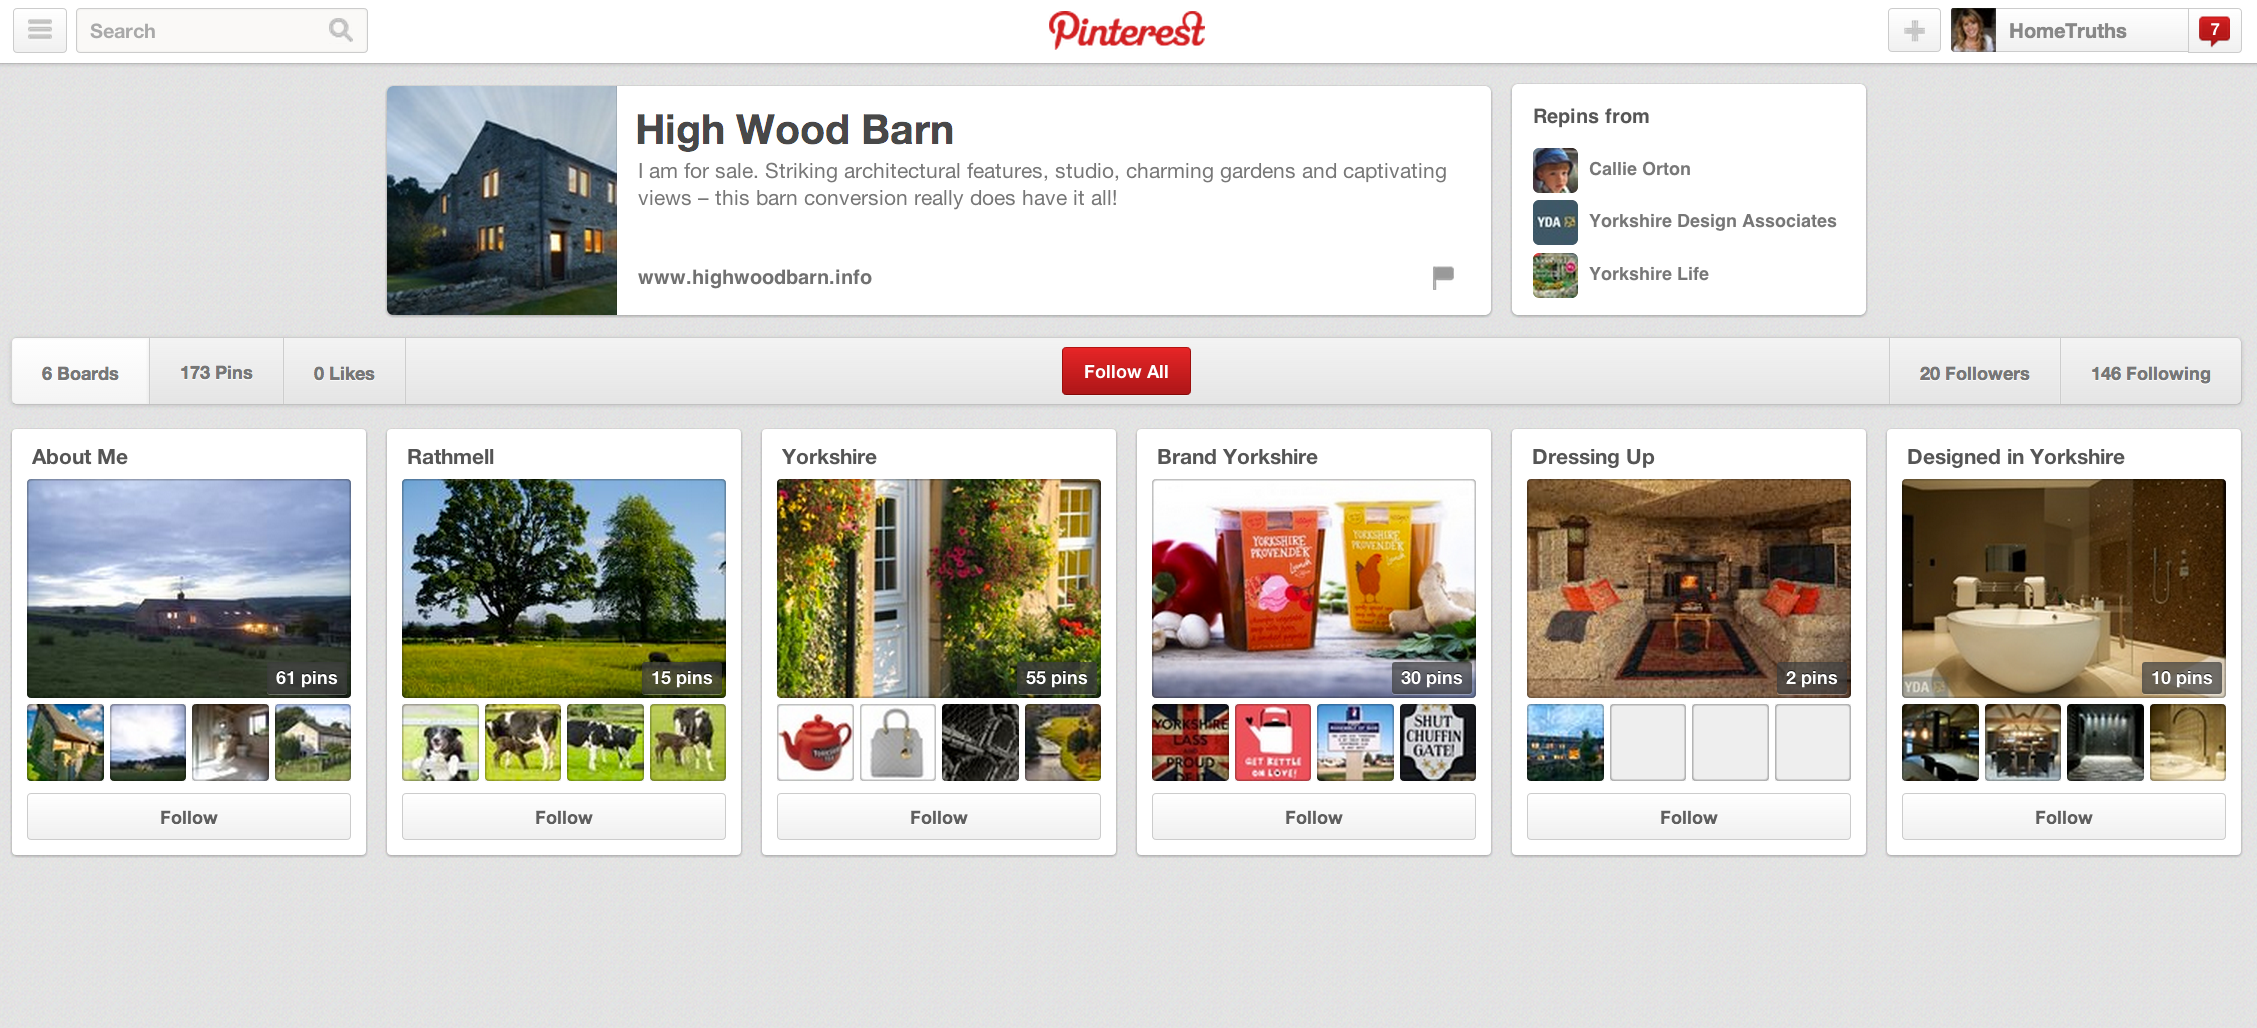 High Wood Barn on Pinterest